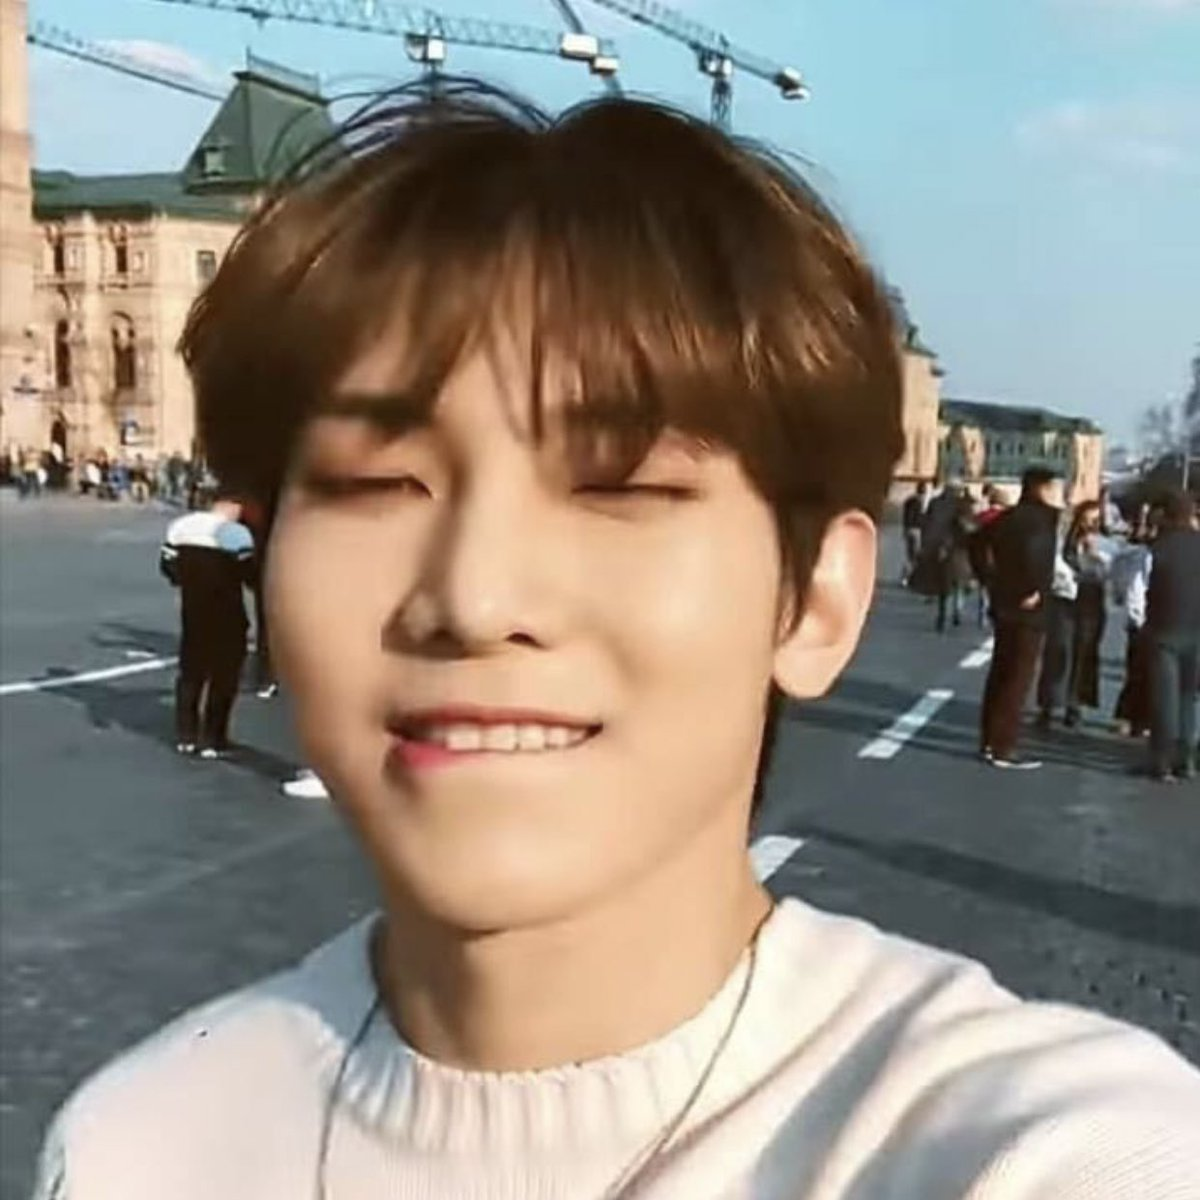 I know I've posted this Yeosang before, but let me——